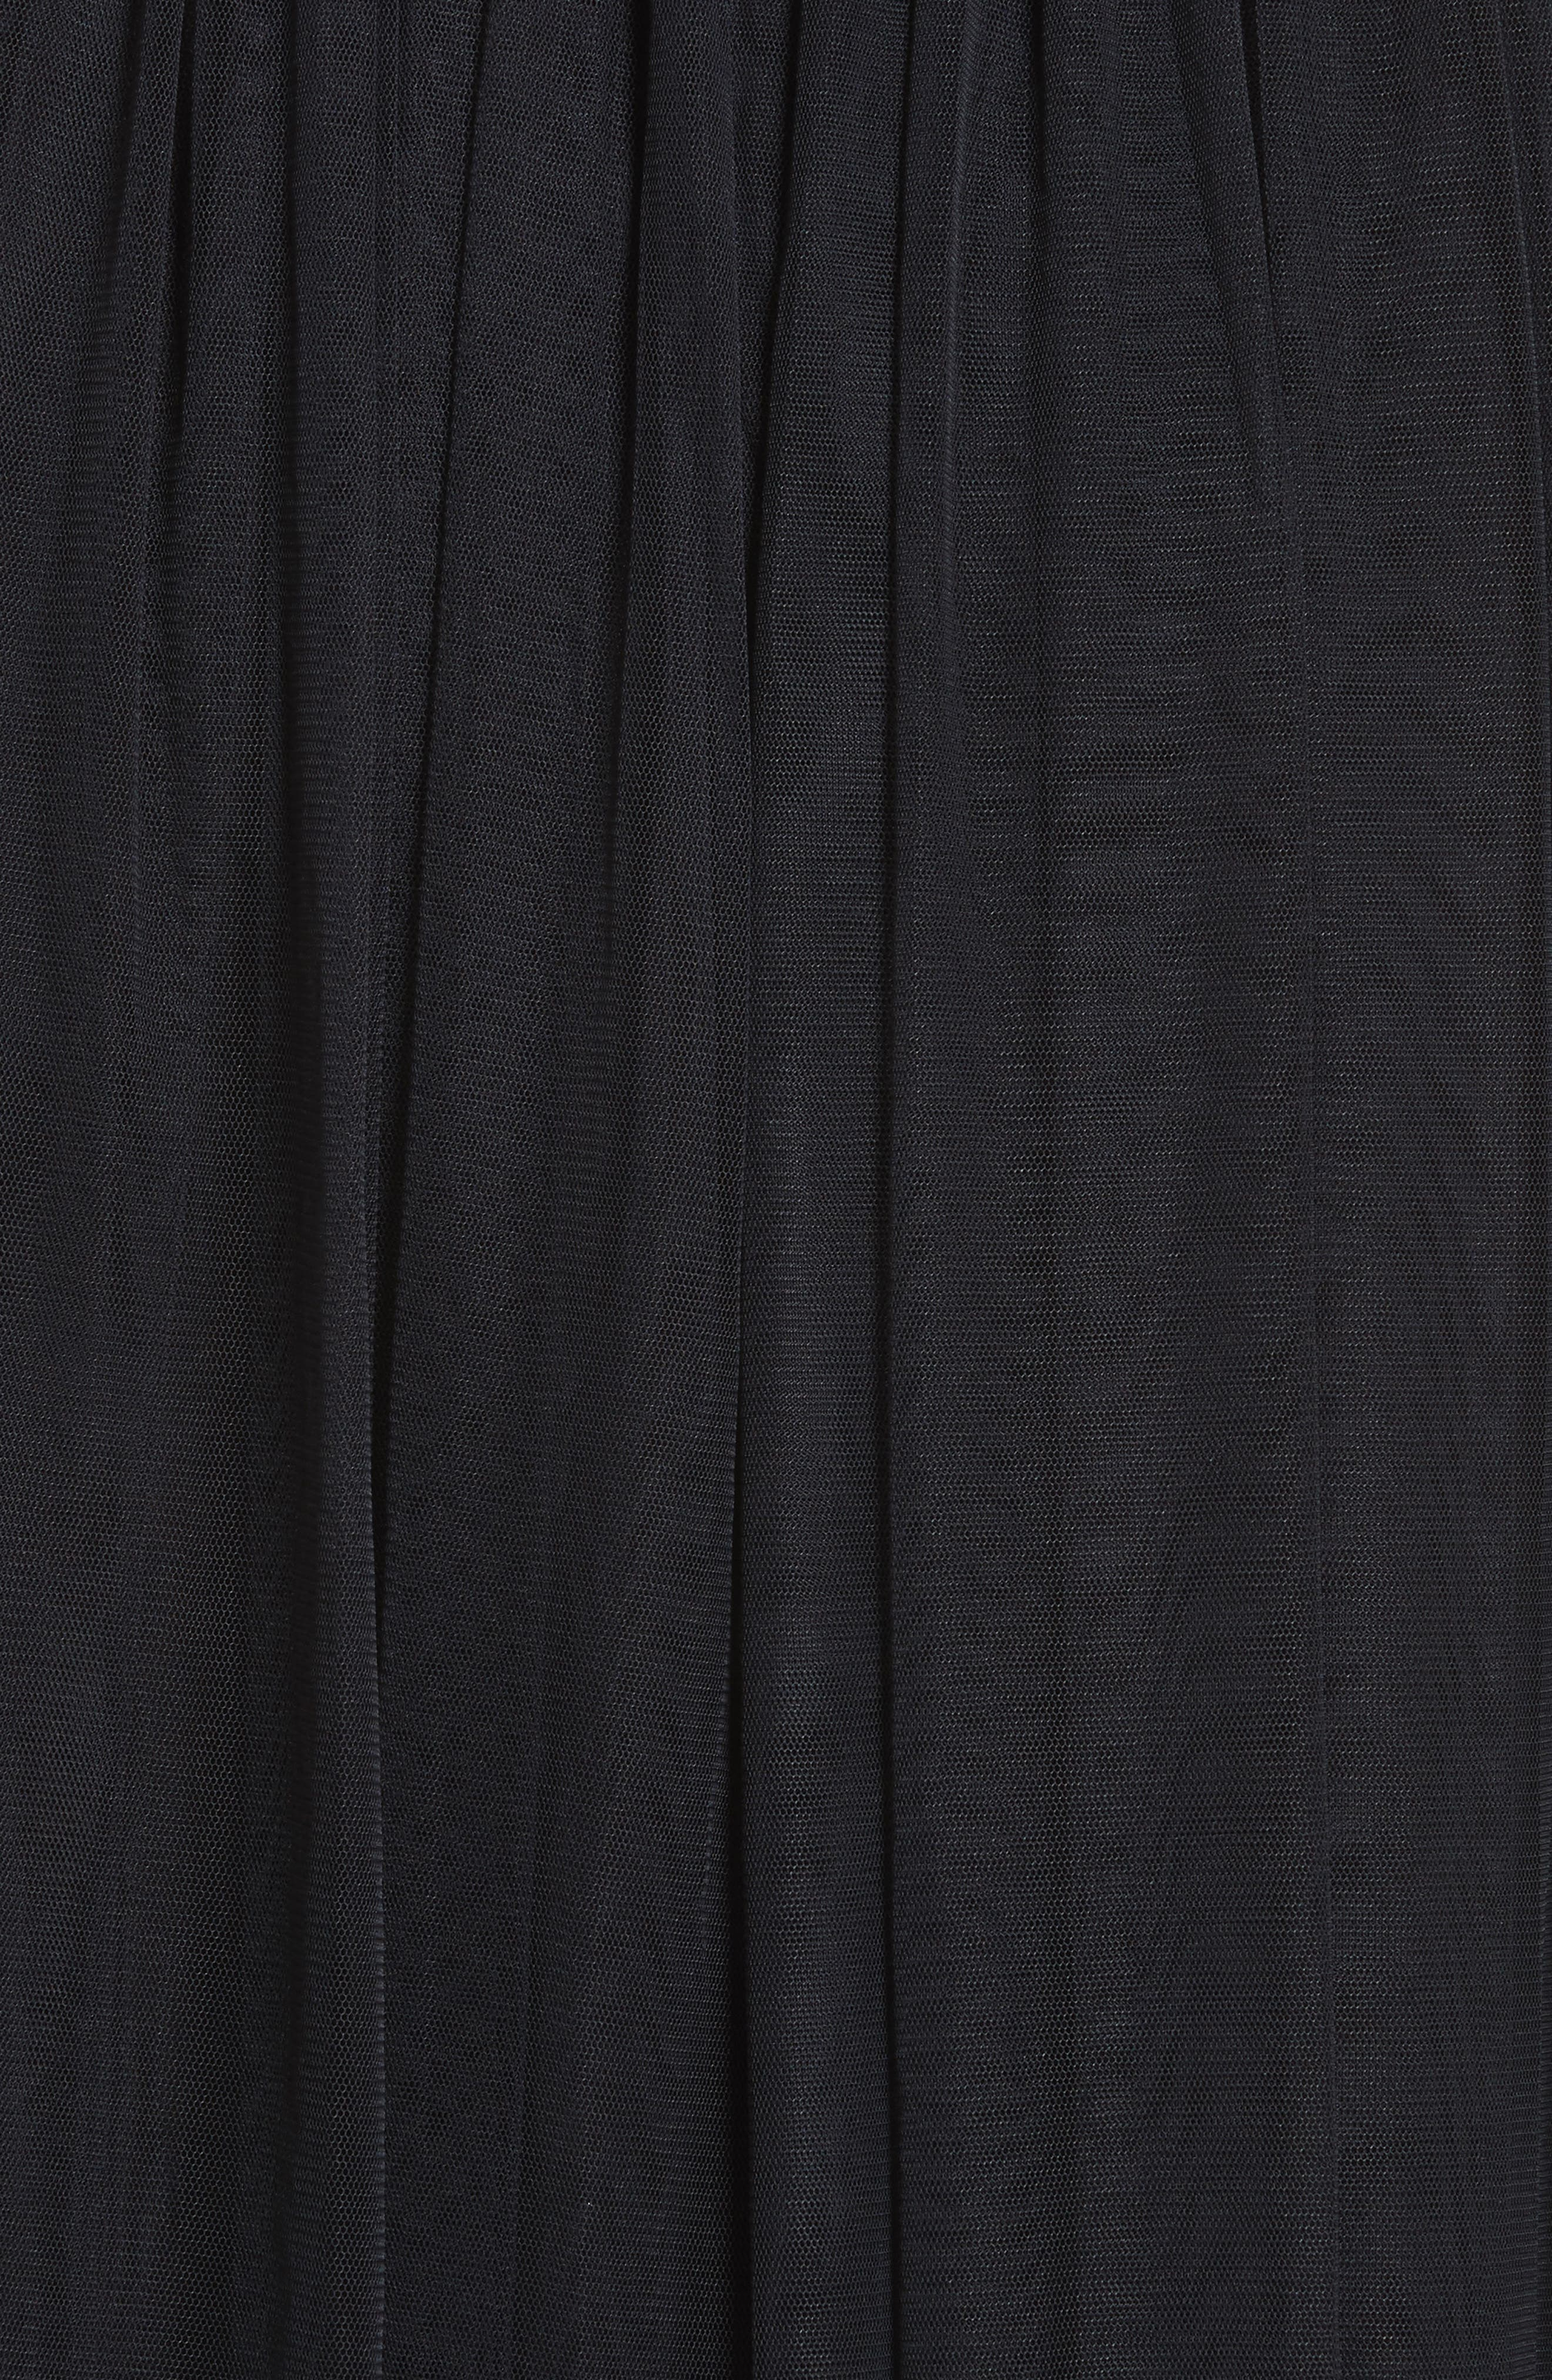 Pleated Tulle Skirt,                             Alternate thumbnail 5, color,                             Washed Black